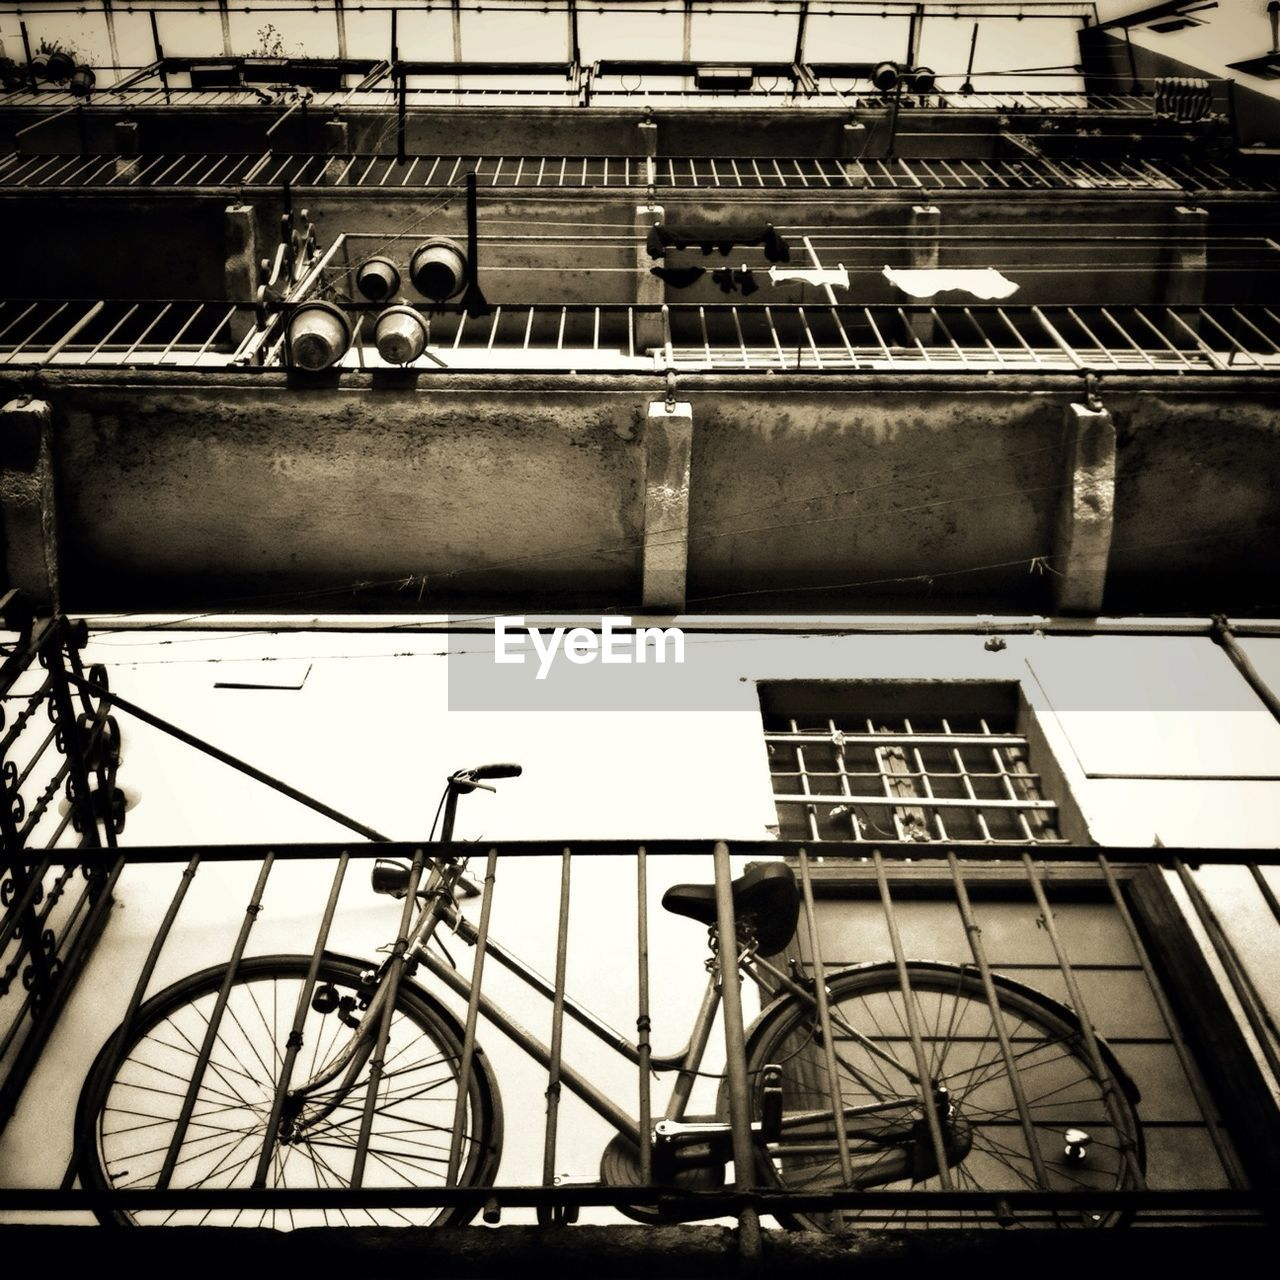 Low angle view of bicycle leaning on railing in building